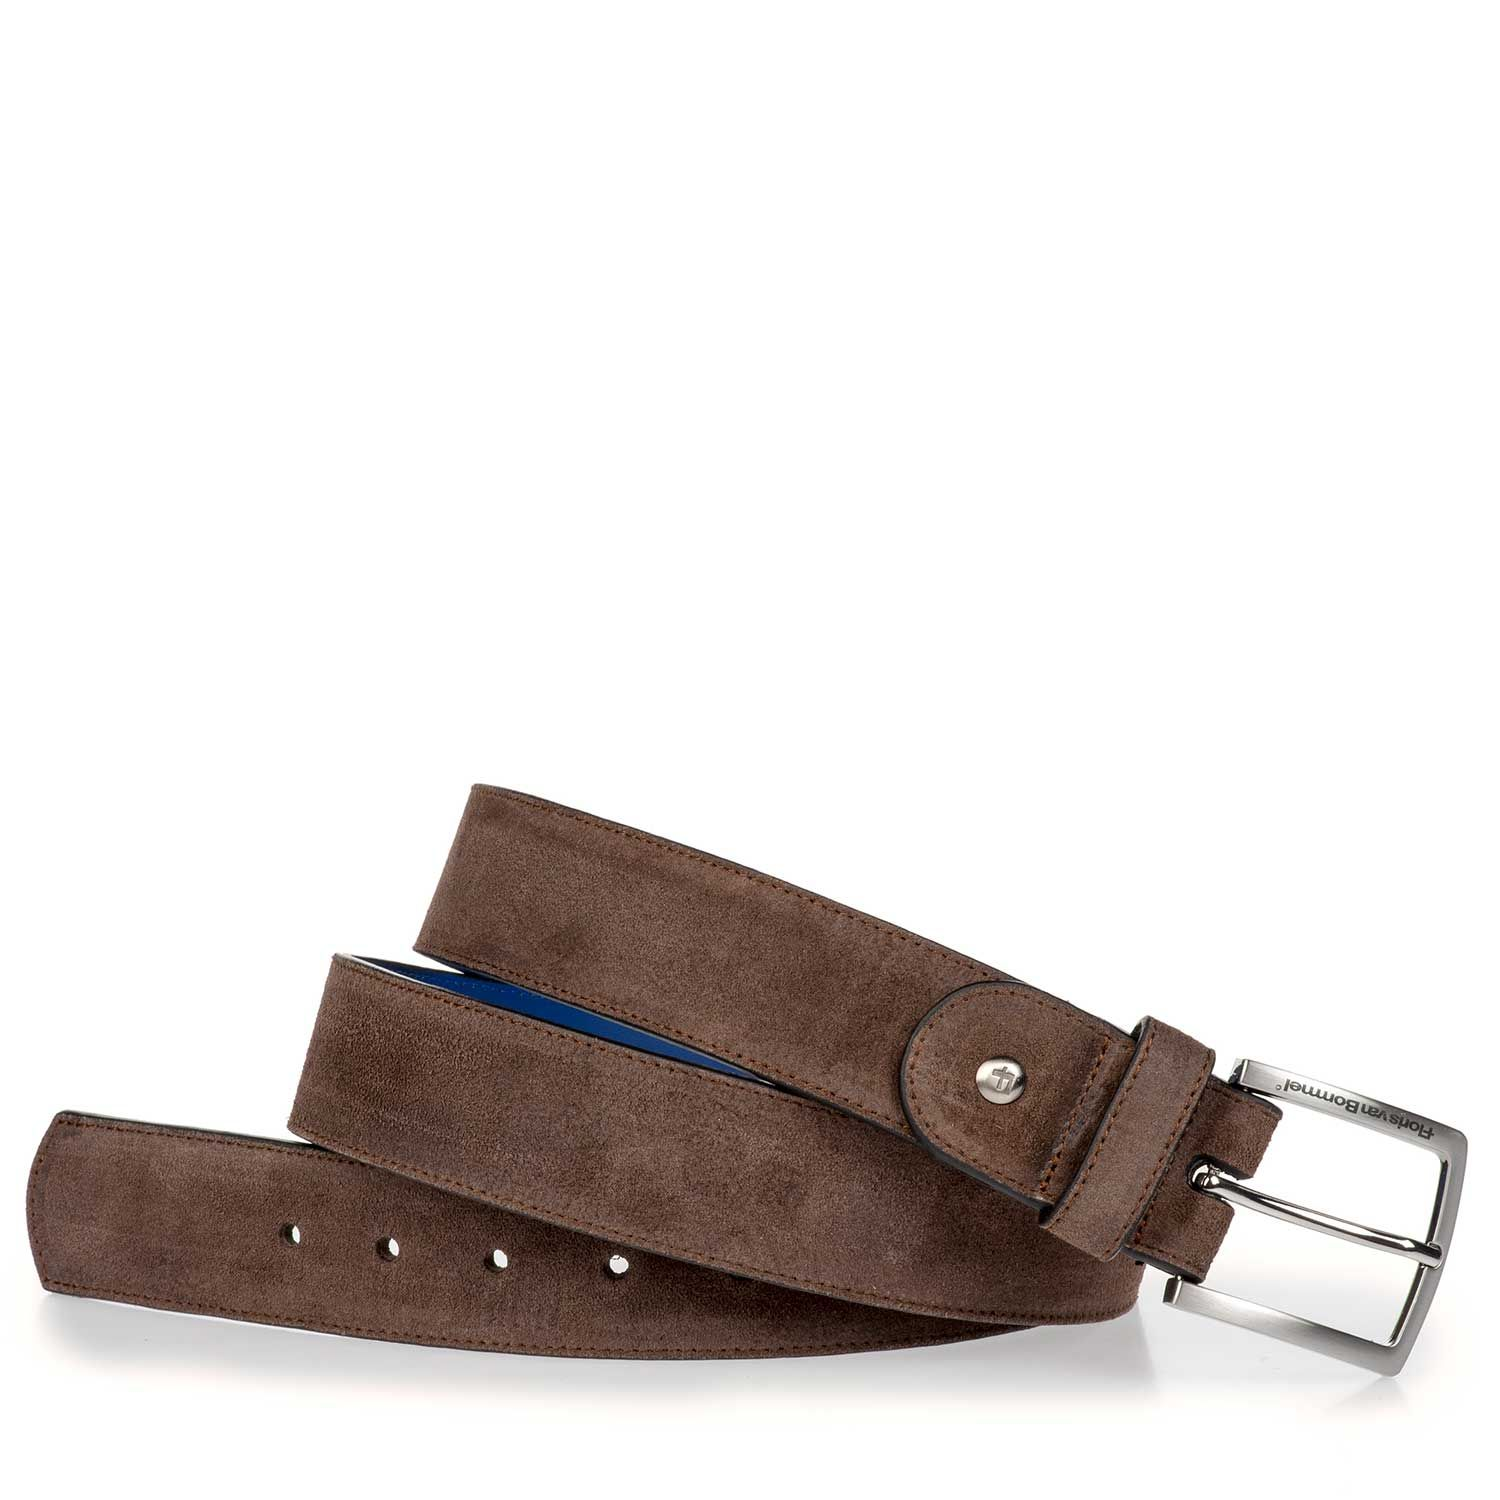 75166/08 - Dark brown suede leather belt